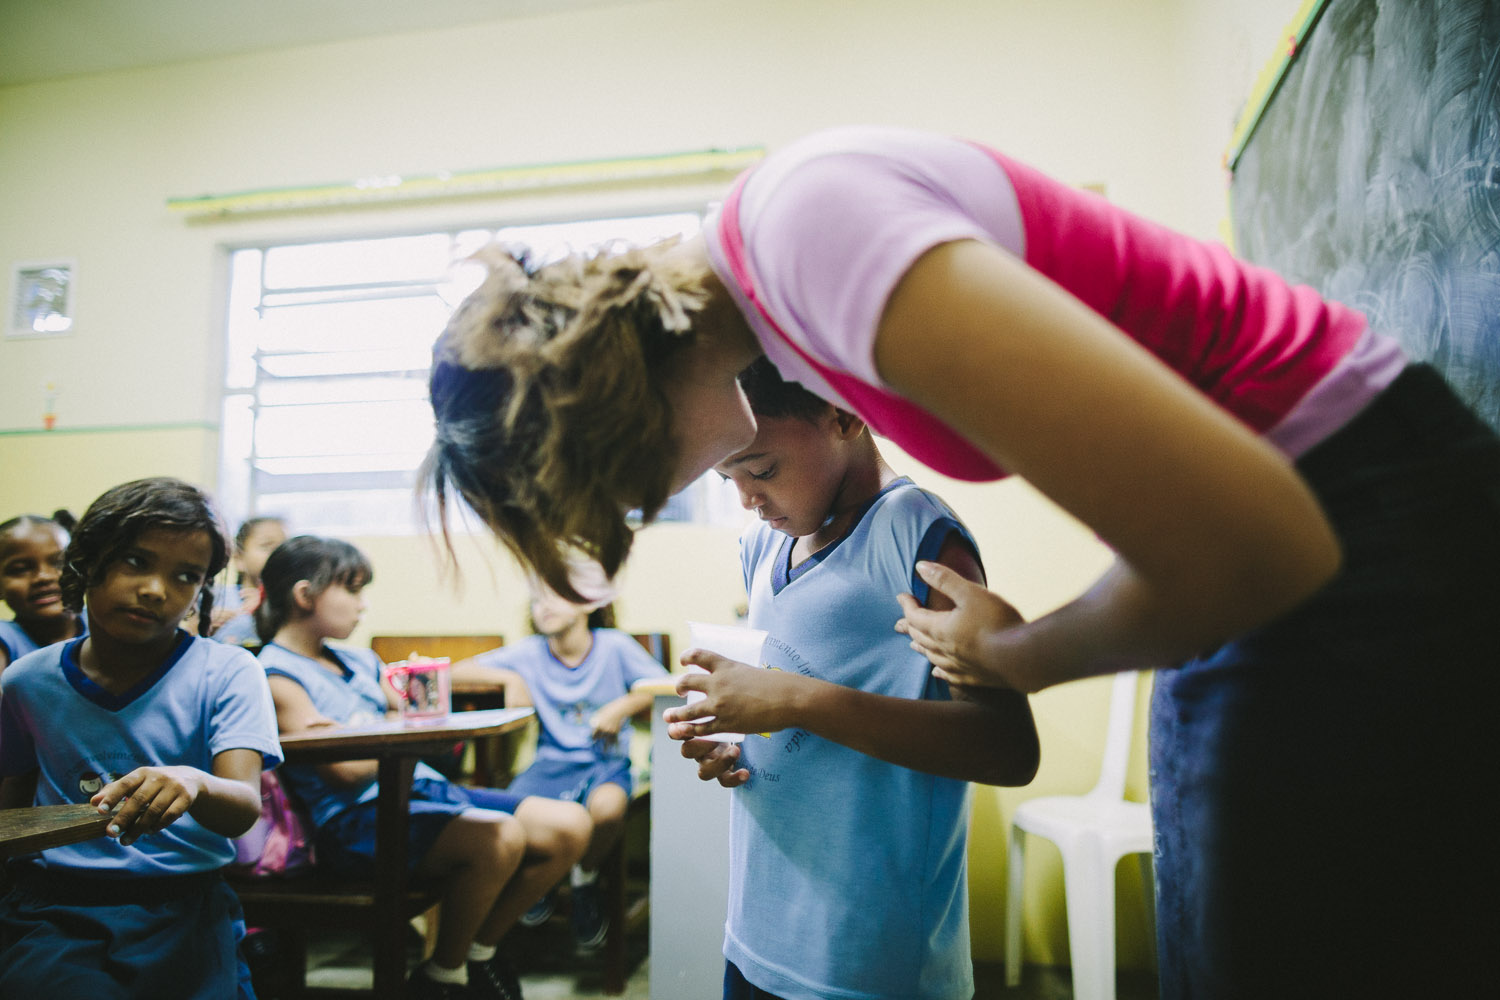 Like kids all over the world, Emidio doens't like to lose at games. The teacher comforts Emidio when she sees him pouting after losing a class game. Emidio during classes at the Compassion Center.